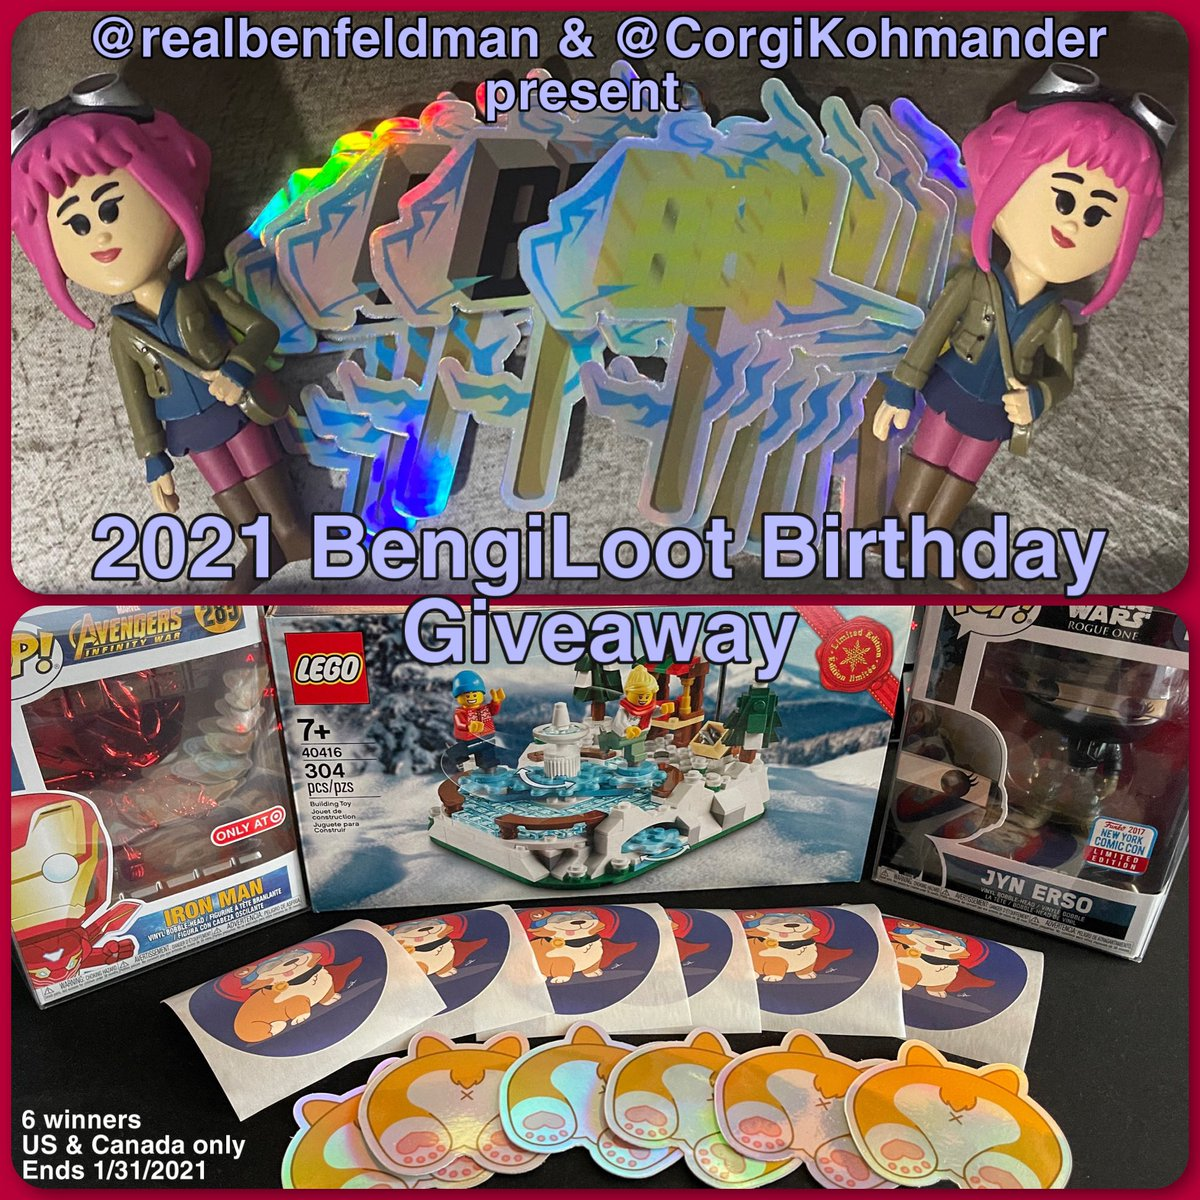 To celebrate our birthdays along w/ the other awesome January babies, Ben & I are doing a joint #giveaway.  Like/RT/follow @realbenfeldman & I and answer using the hashtag #BenGiLoot what is your favorite birthday memory?  6 winners chosen 1/31. US and Canada shipping only.